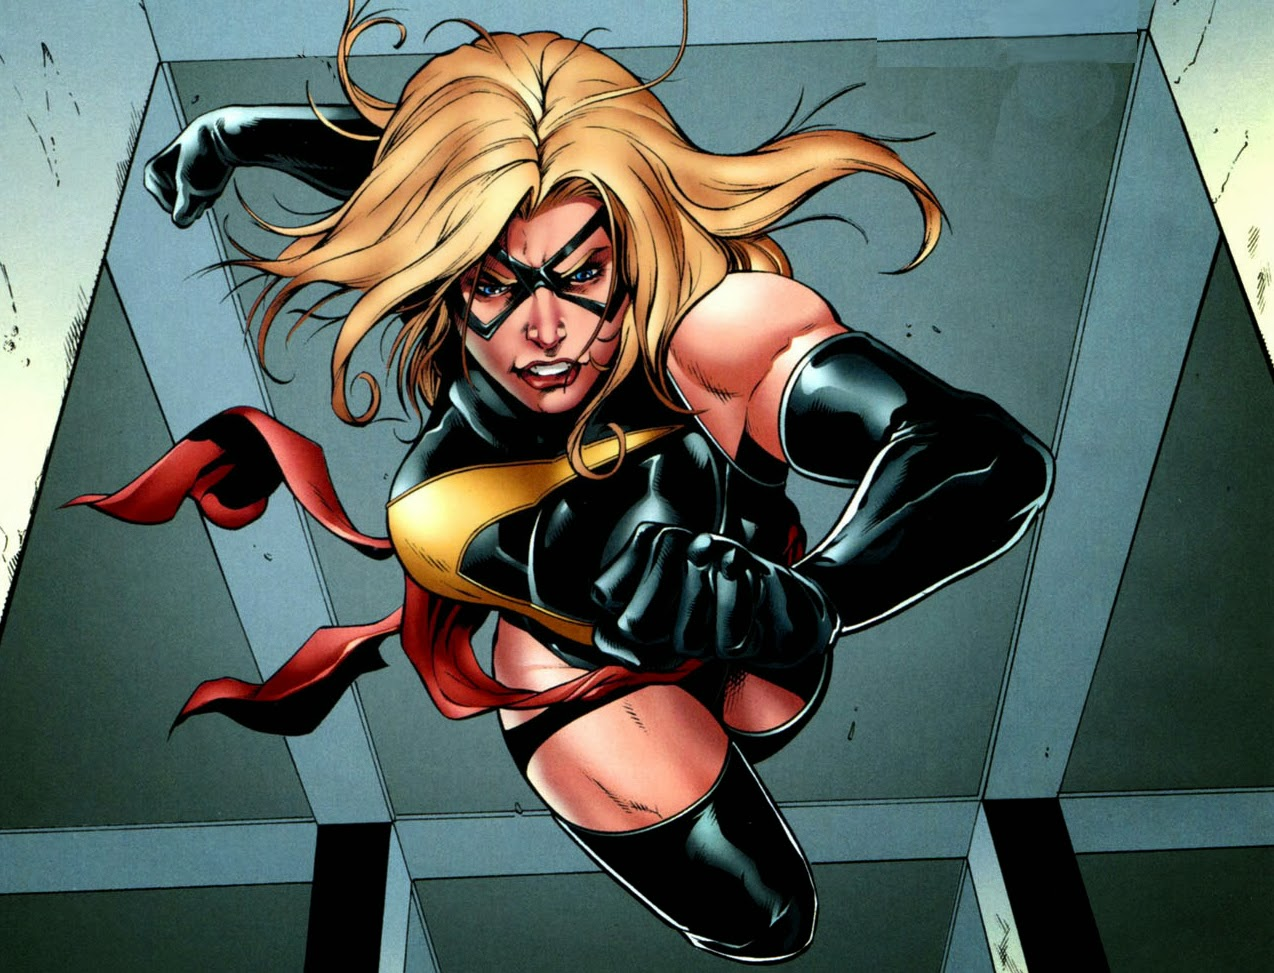 Spoilers for a Ms. Marvel Movie